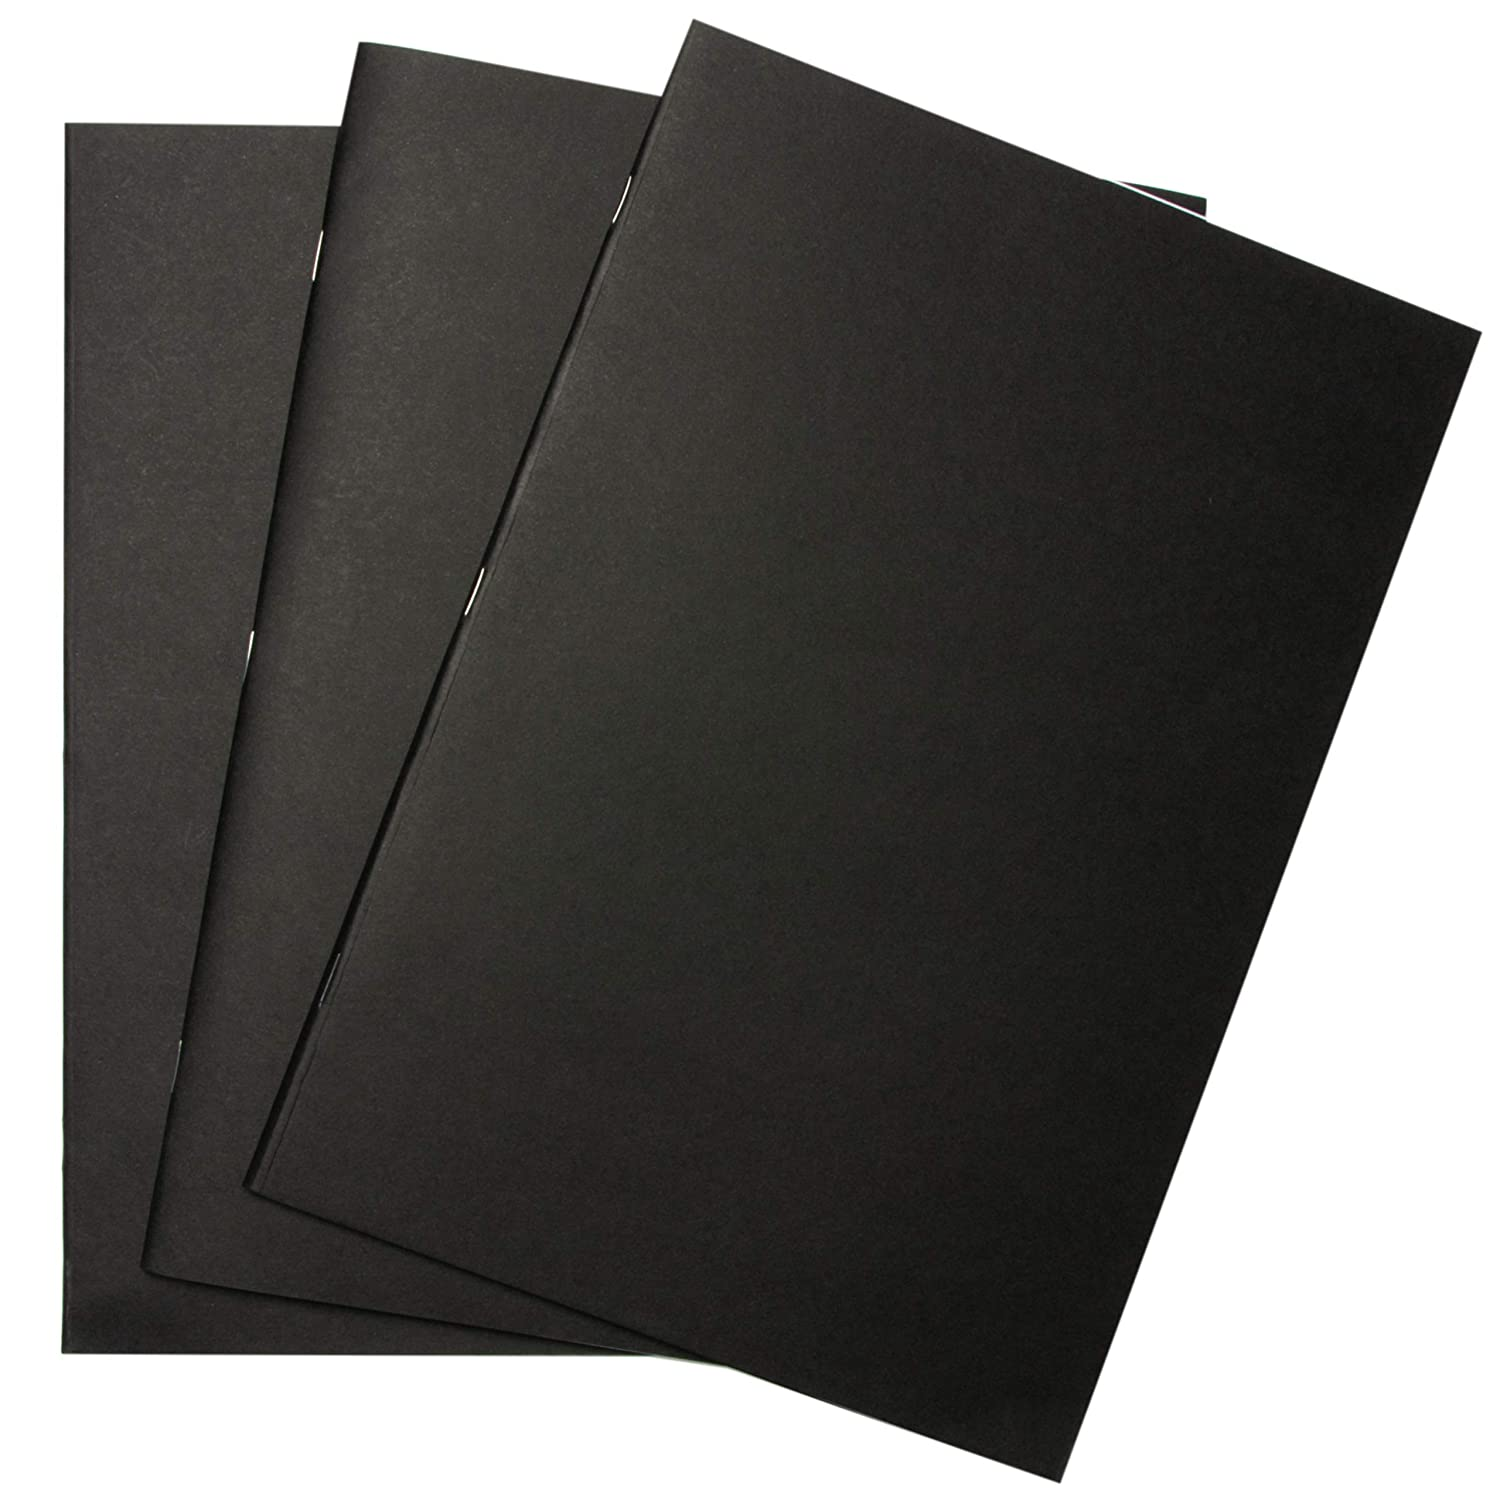 Sketchbooks Pack of 3 - A5, Black Soft Cover Starter Sketch Book and White 165 GSM Cartridge Paper Sketch Pad with Sizes A3 and A4 for Mixed Media Use